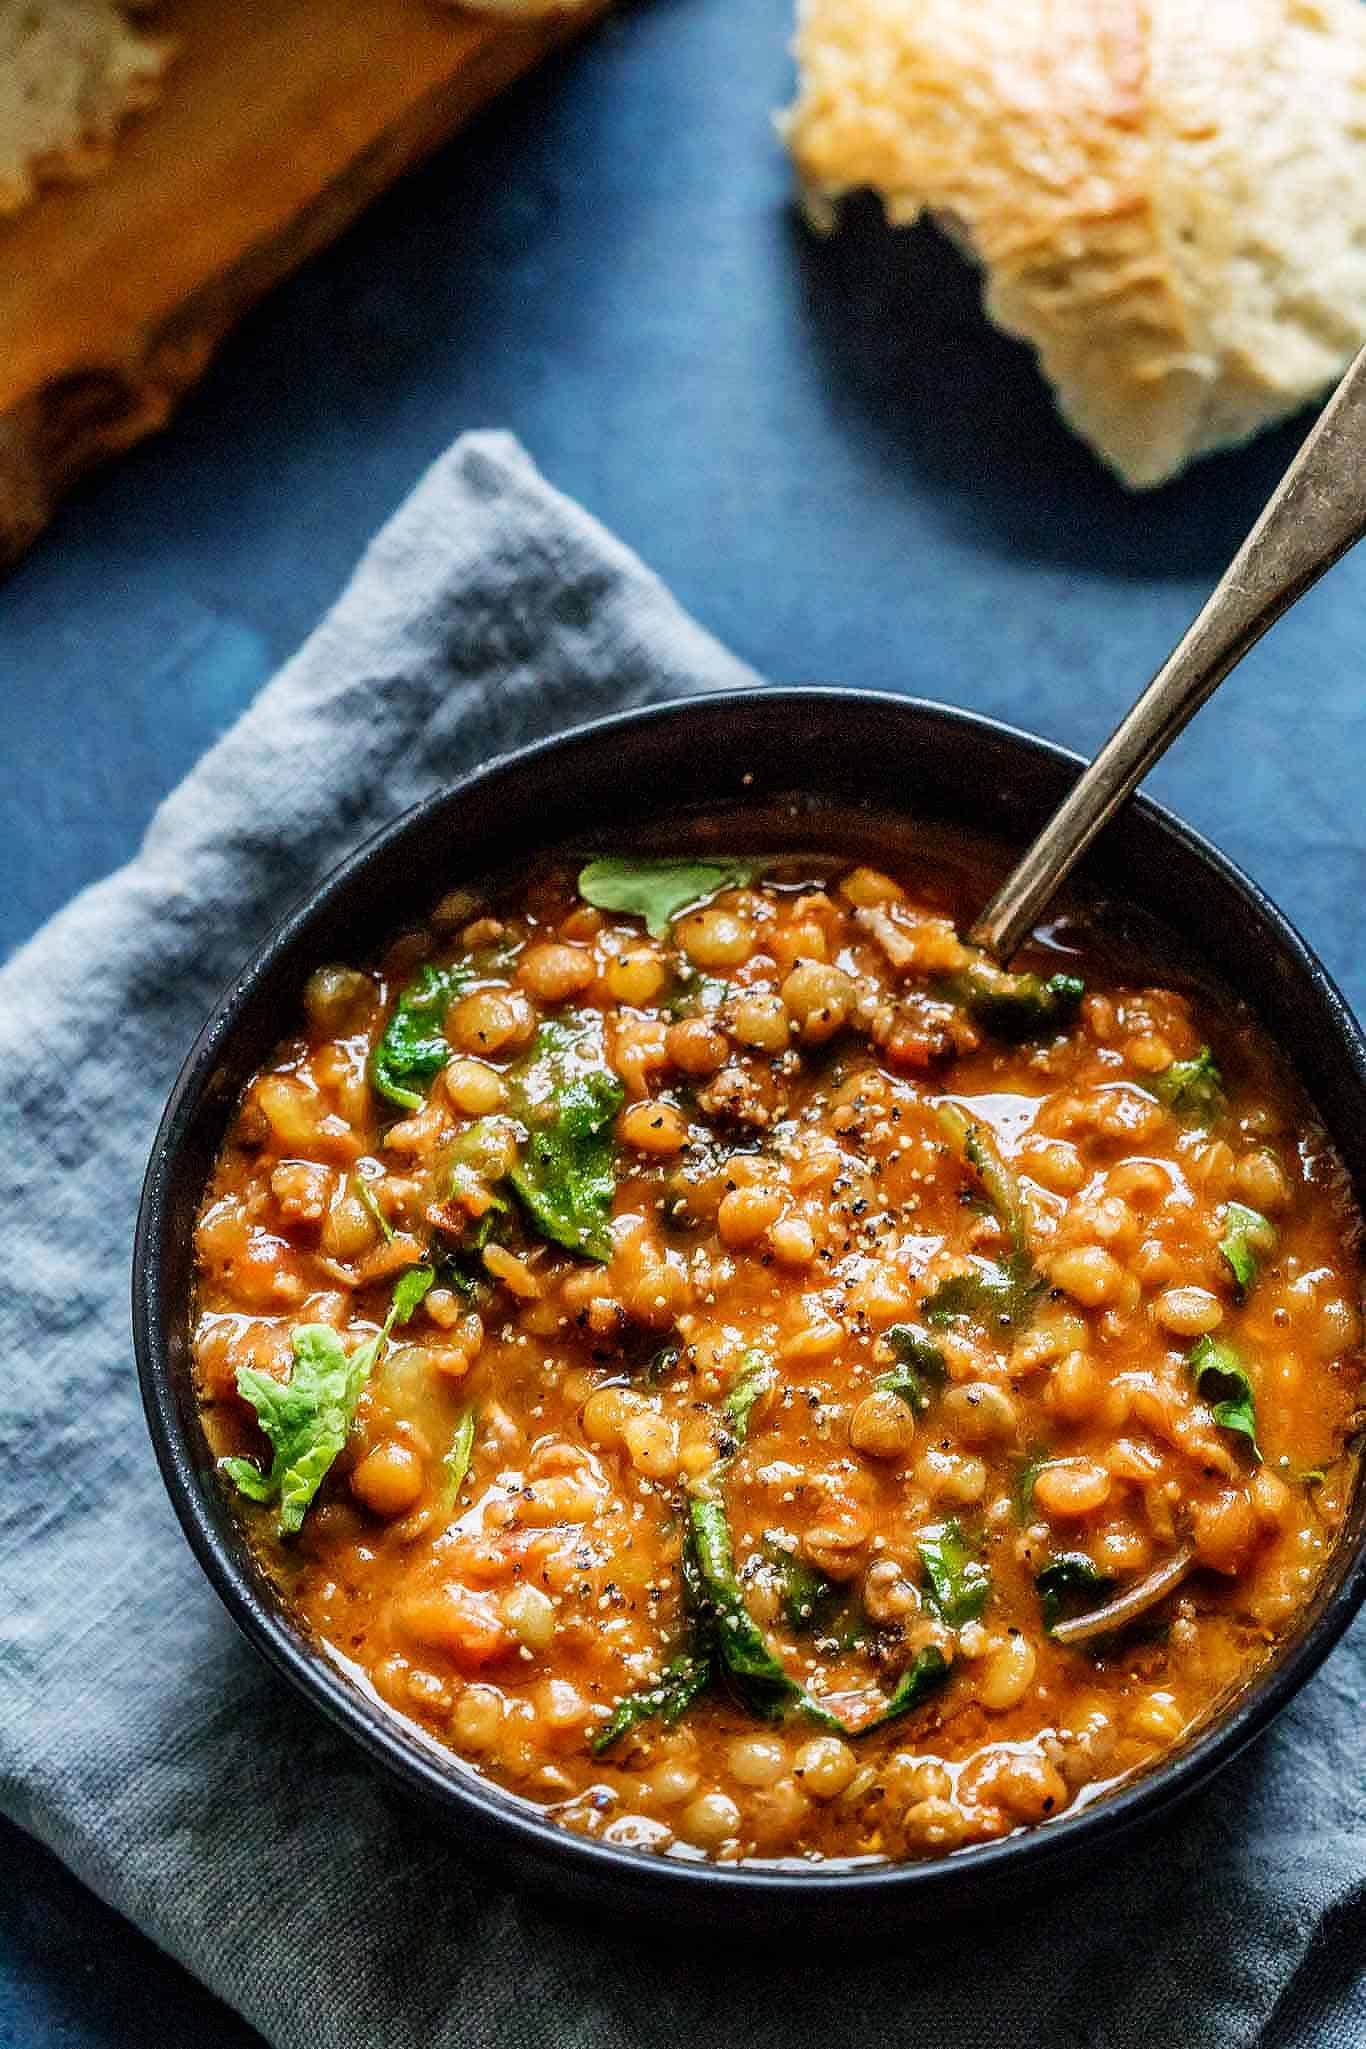 This Instant Pot Lentil Soup with Sausage & Kale comes together quickly with the help of your electric pressure cooker. It's a hearty soup that's perfect for chilly days.